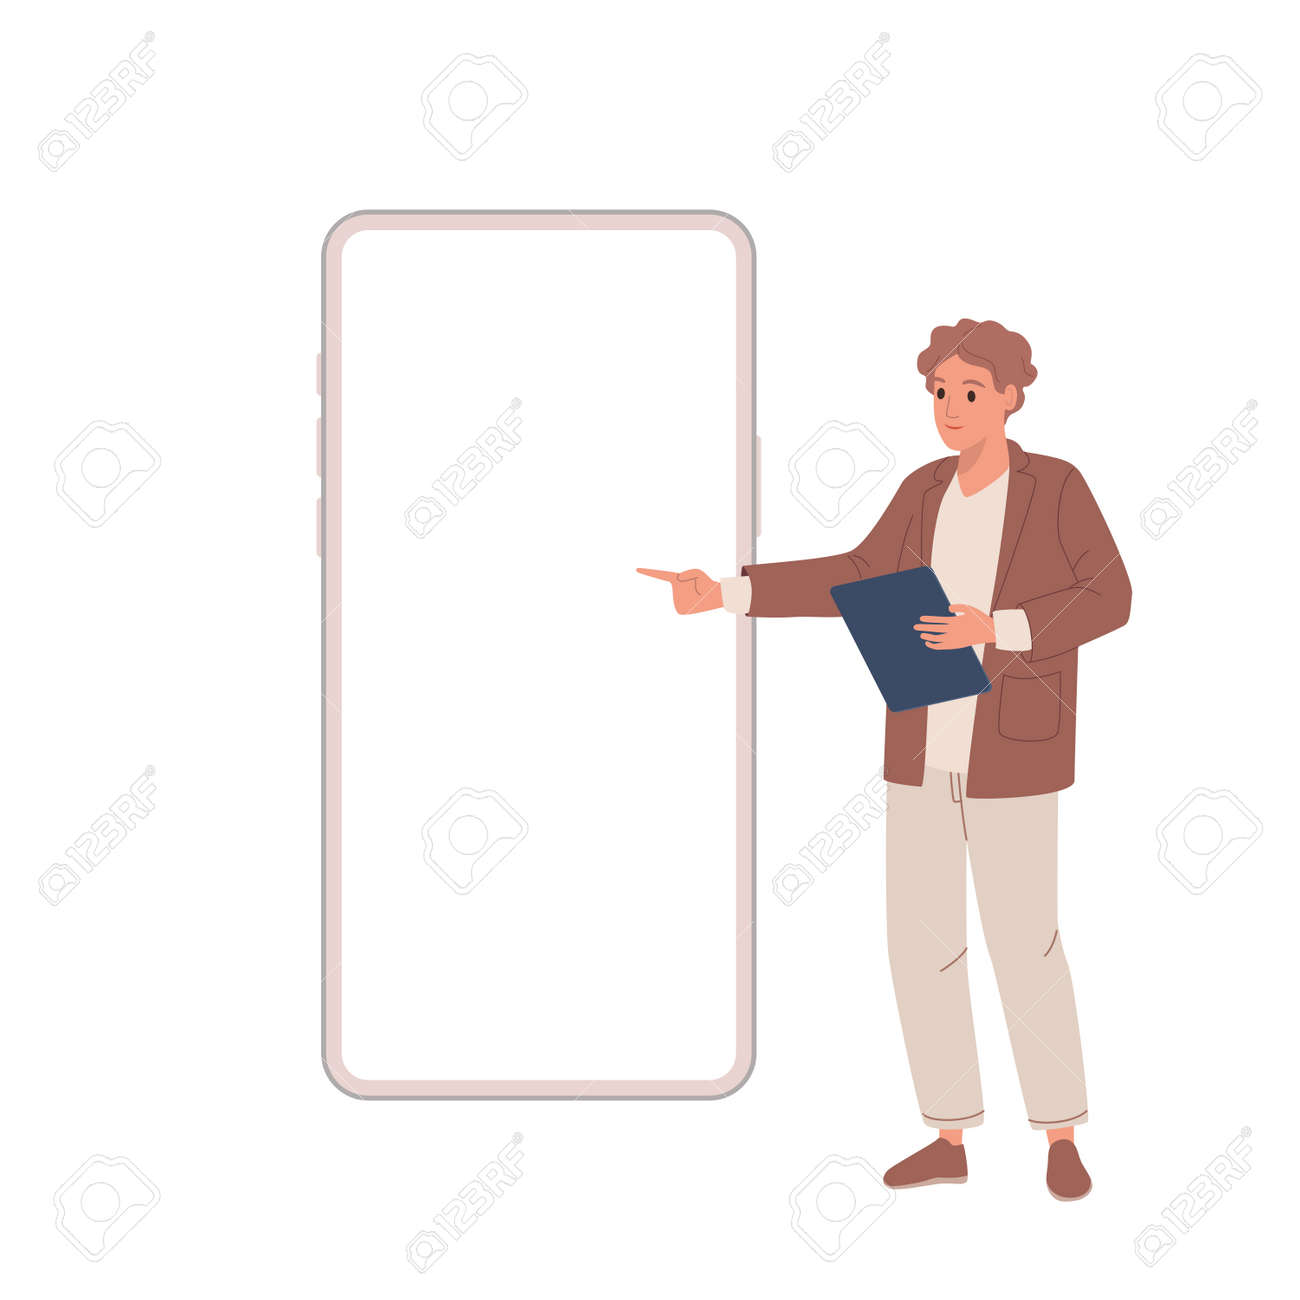 Digital marketing. Young guy makes presentation shows on smartphone - 153582181